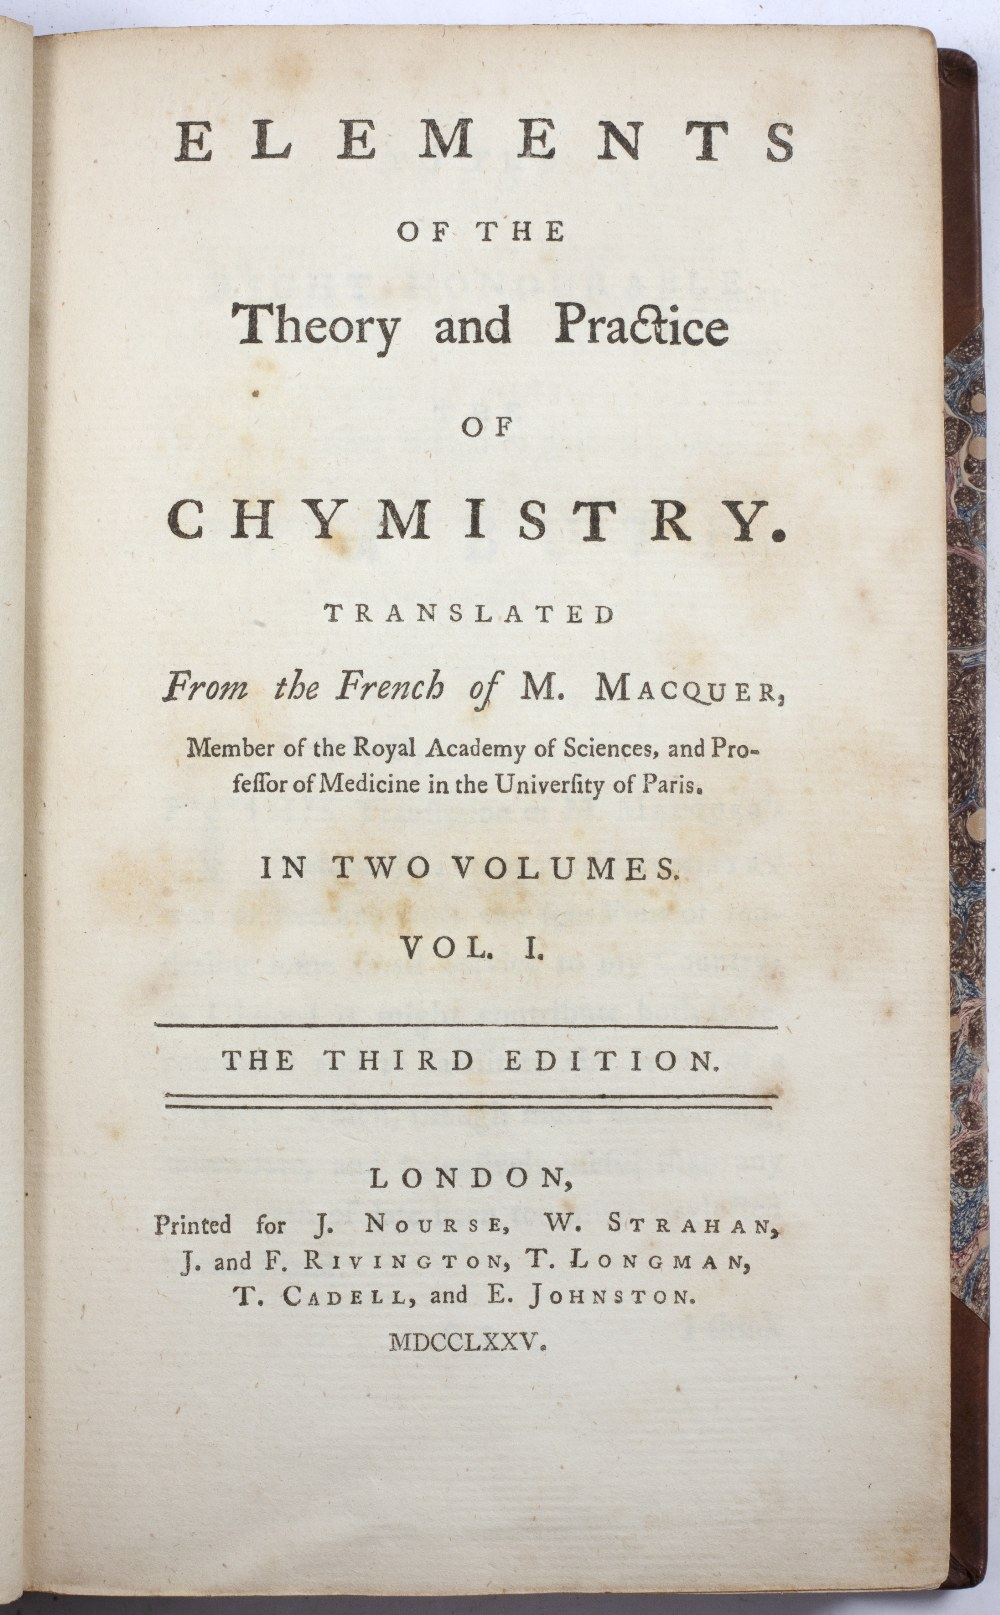 MACQUER, Pierre Joseph, 'Elements of the Theory and Practice of Chymistry', translated from the - Image 2 of 2